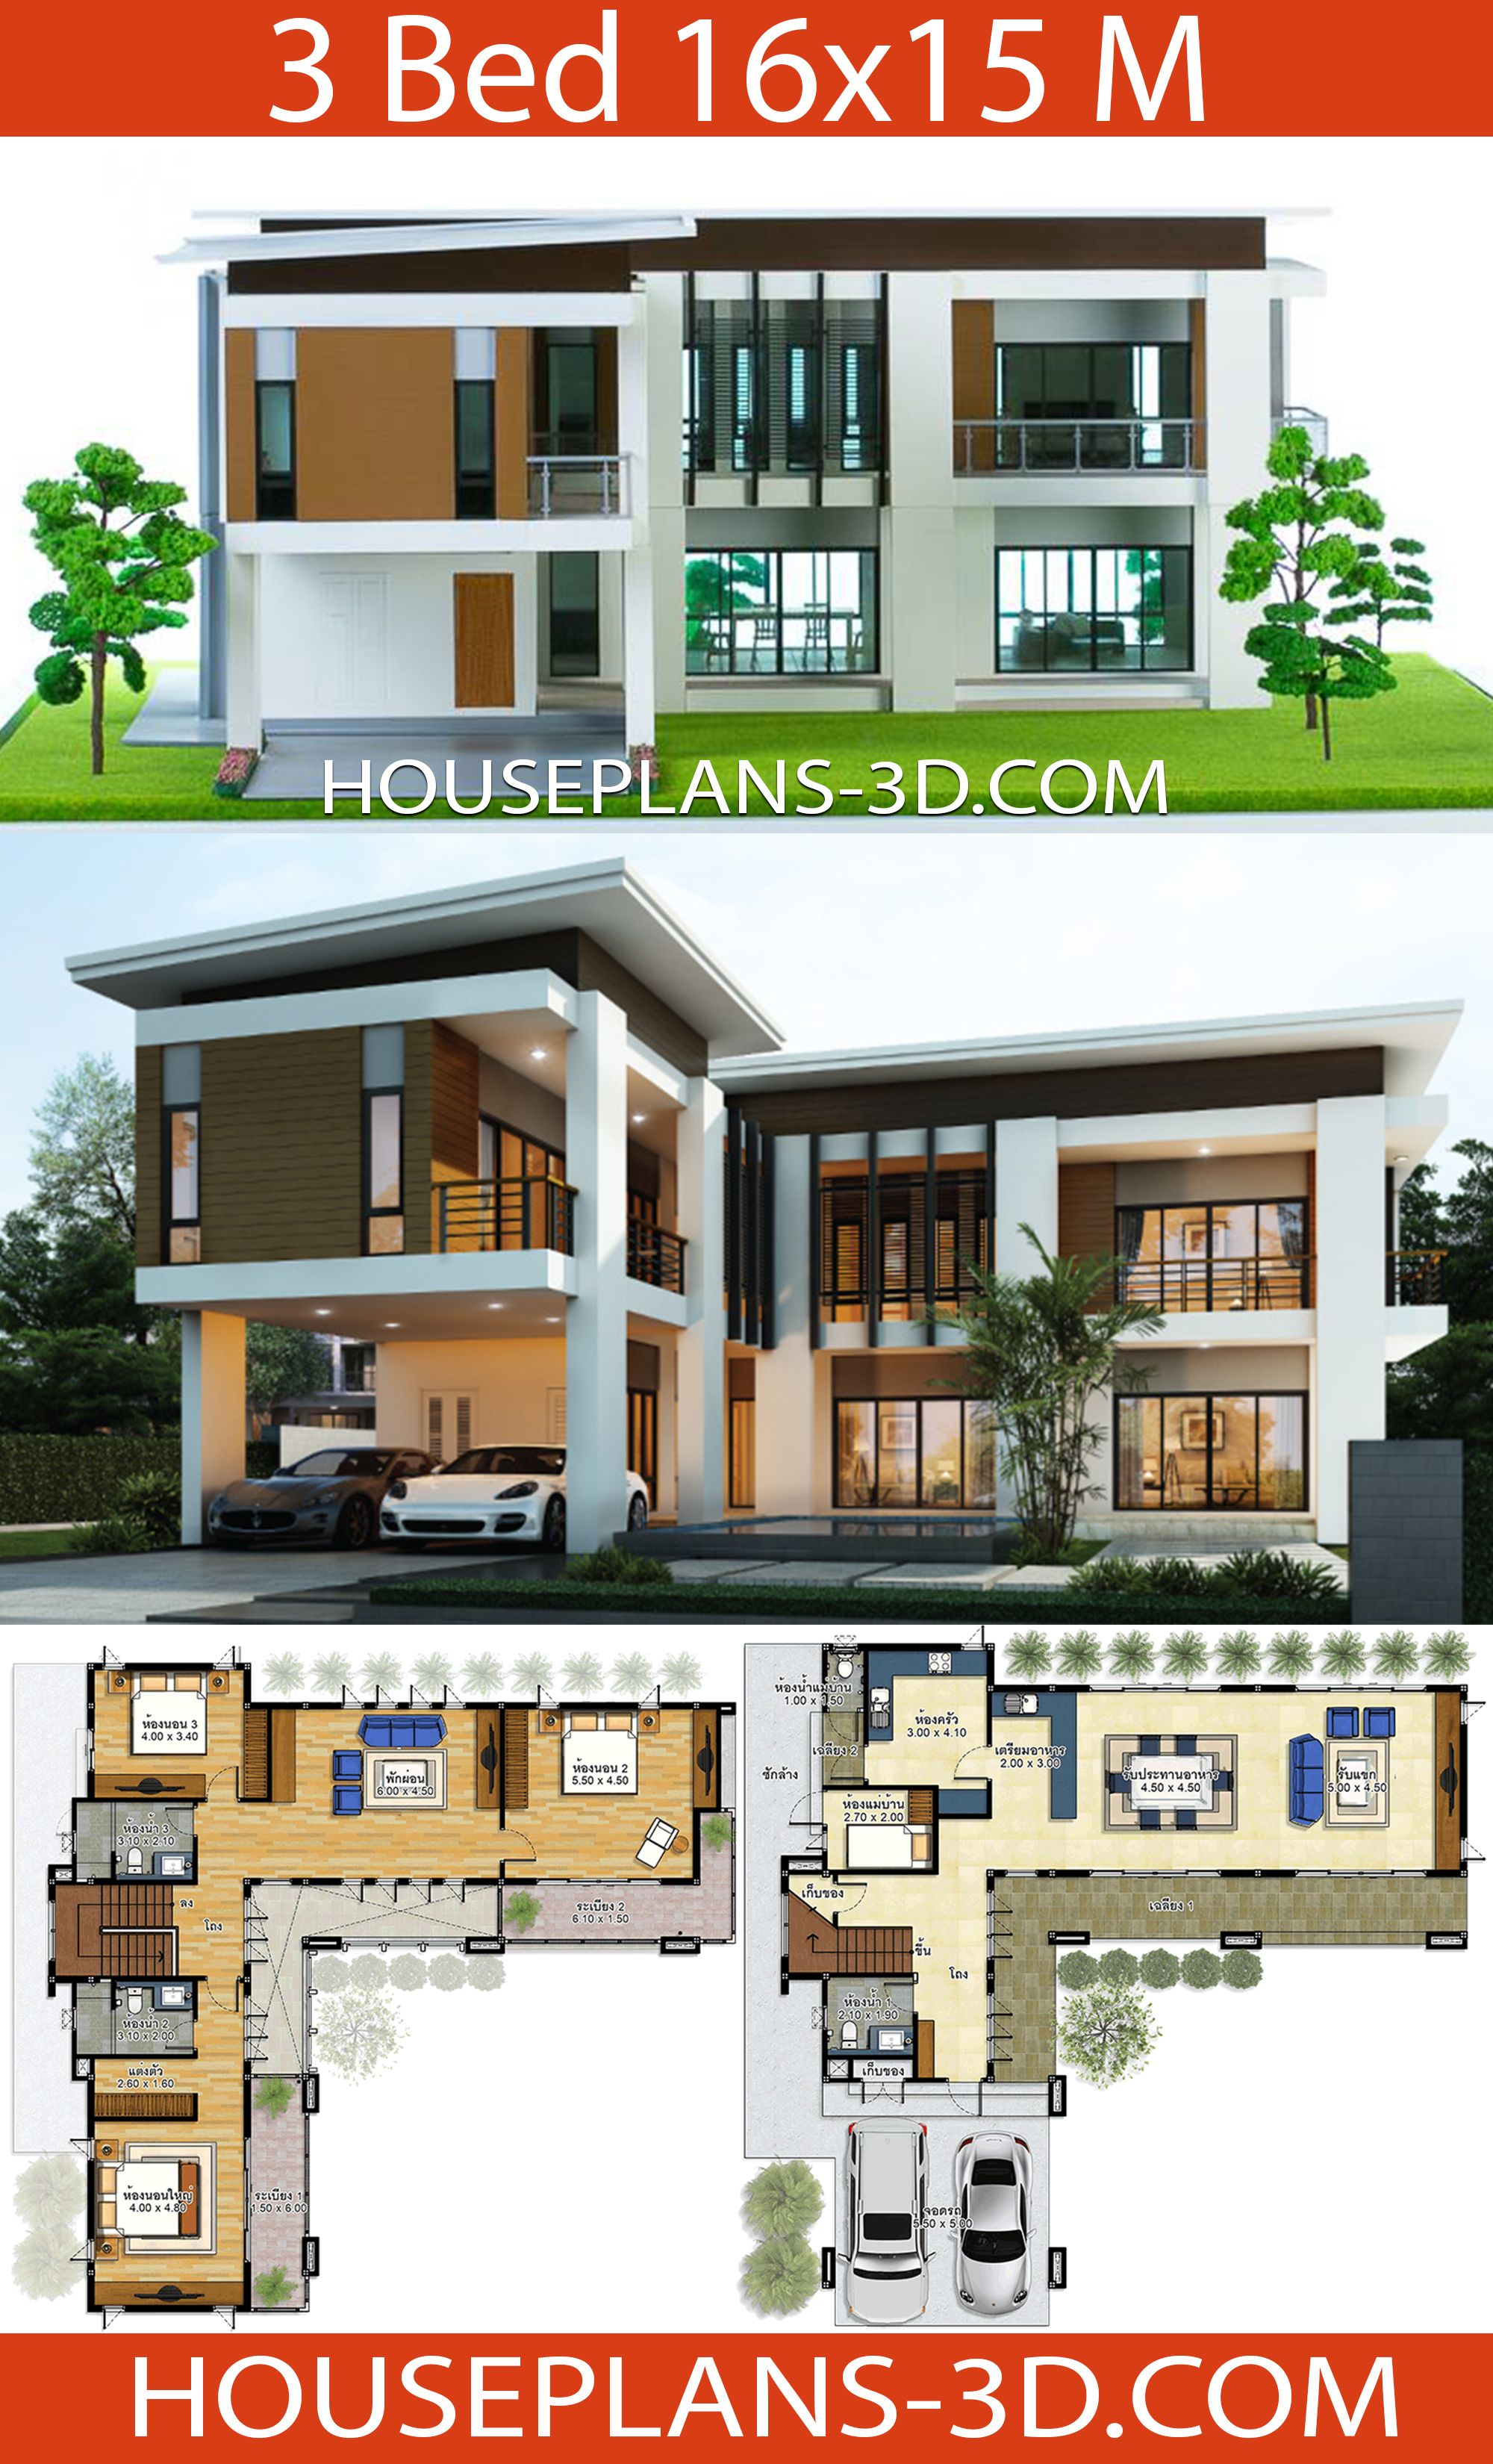 House Design 16x15 With 3 Bedrooms House Plans 3d Denah Rumah Rumah Impian Rumah Modern